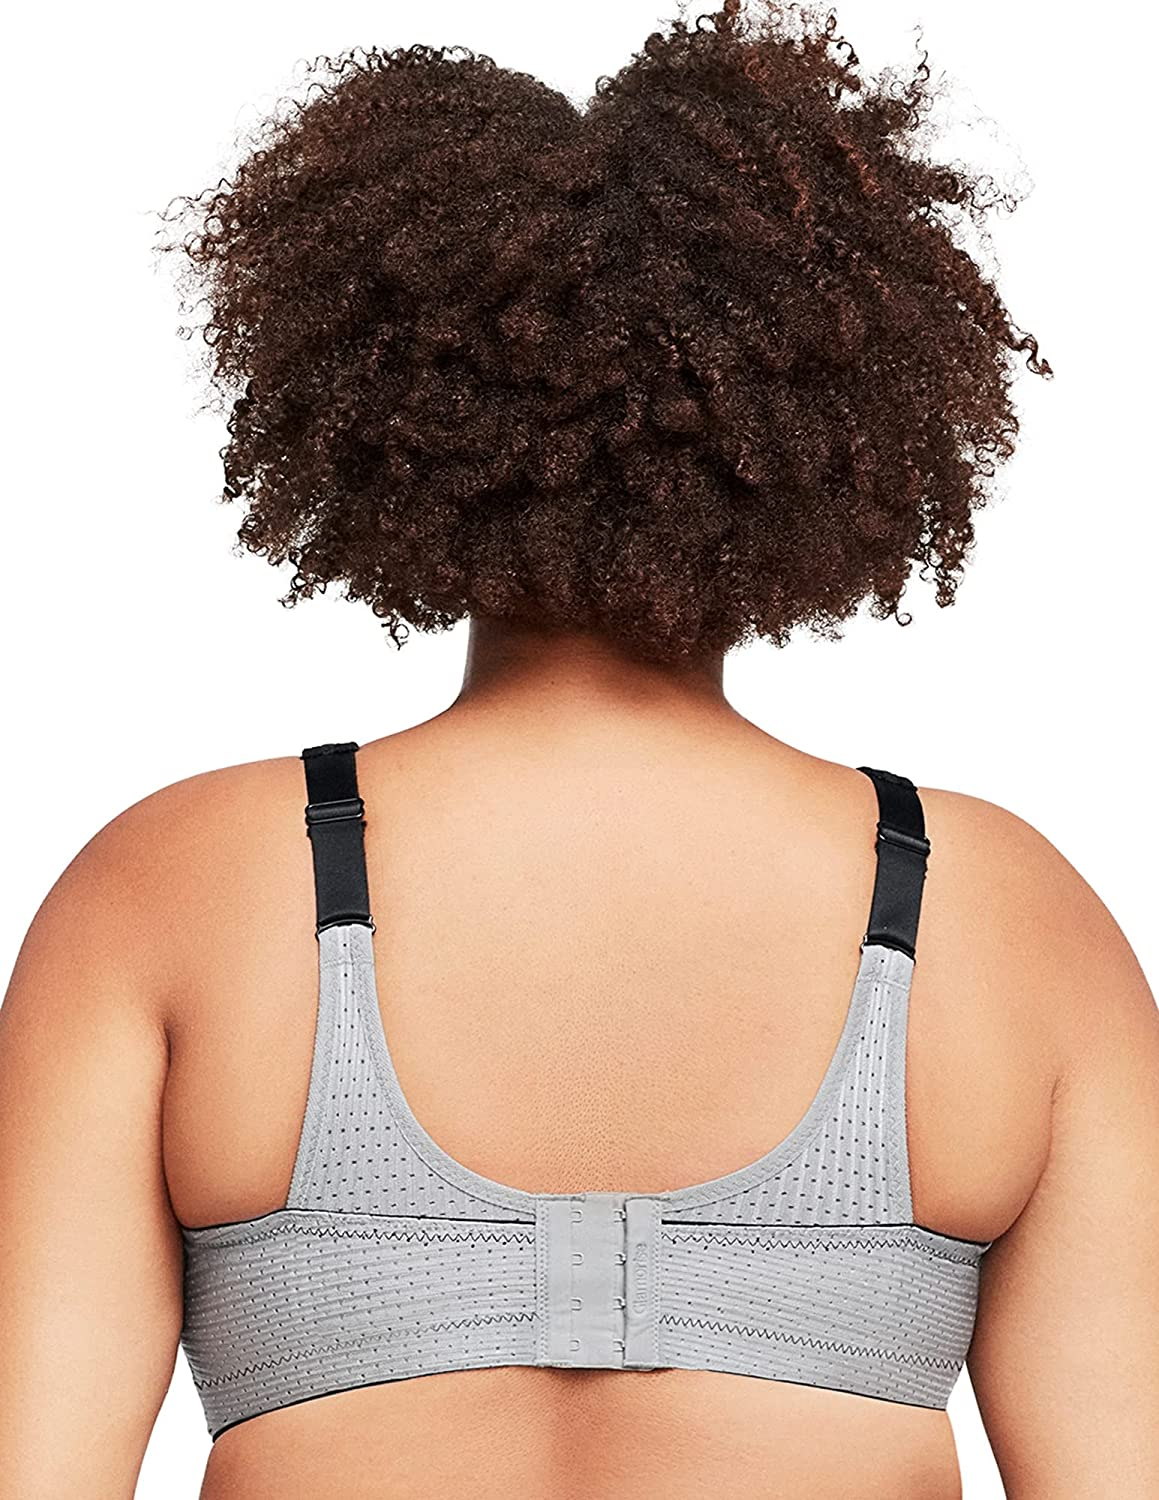 Glamorise Custom Control Wire Free Sports Bra 7 Best Plus-Size Sports Bras for Large Breasts, Control & Comfort for All